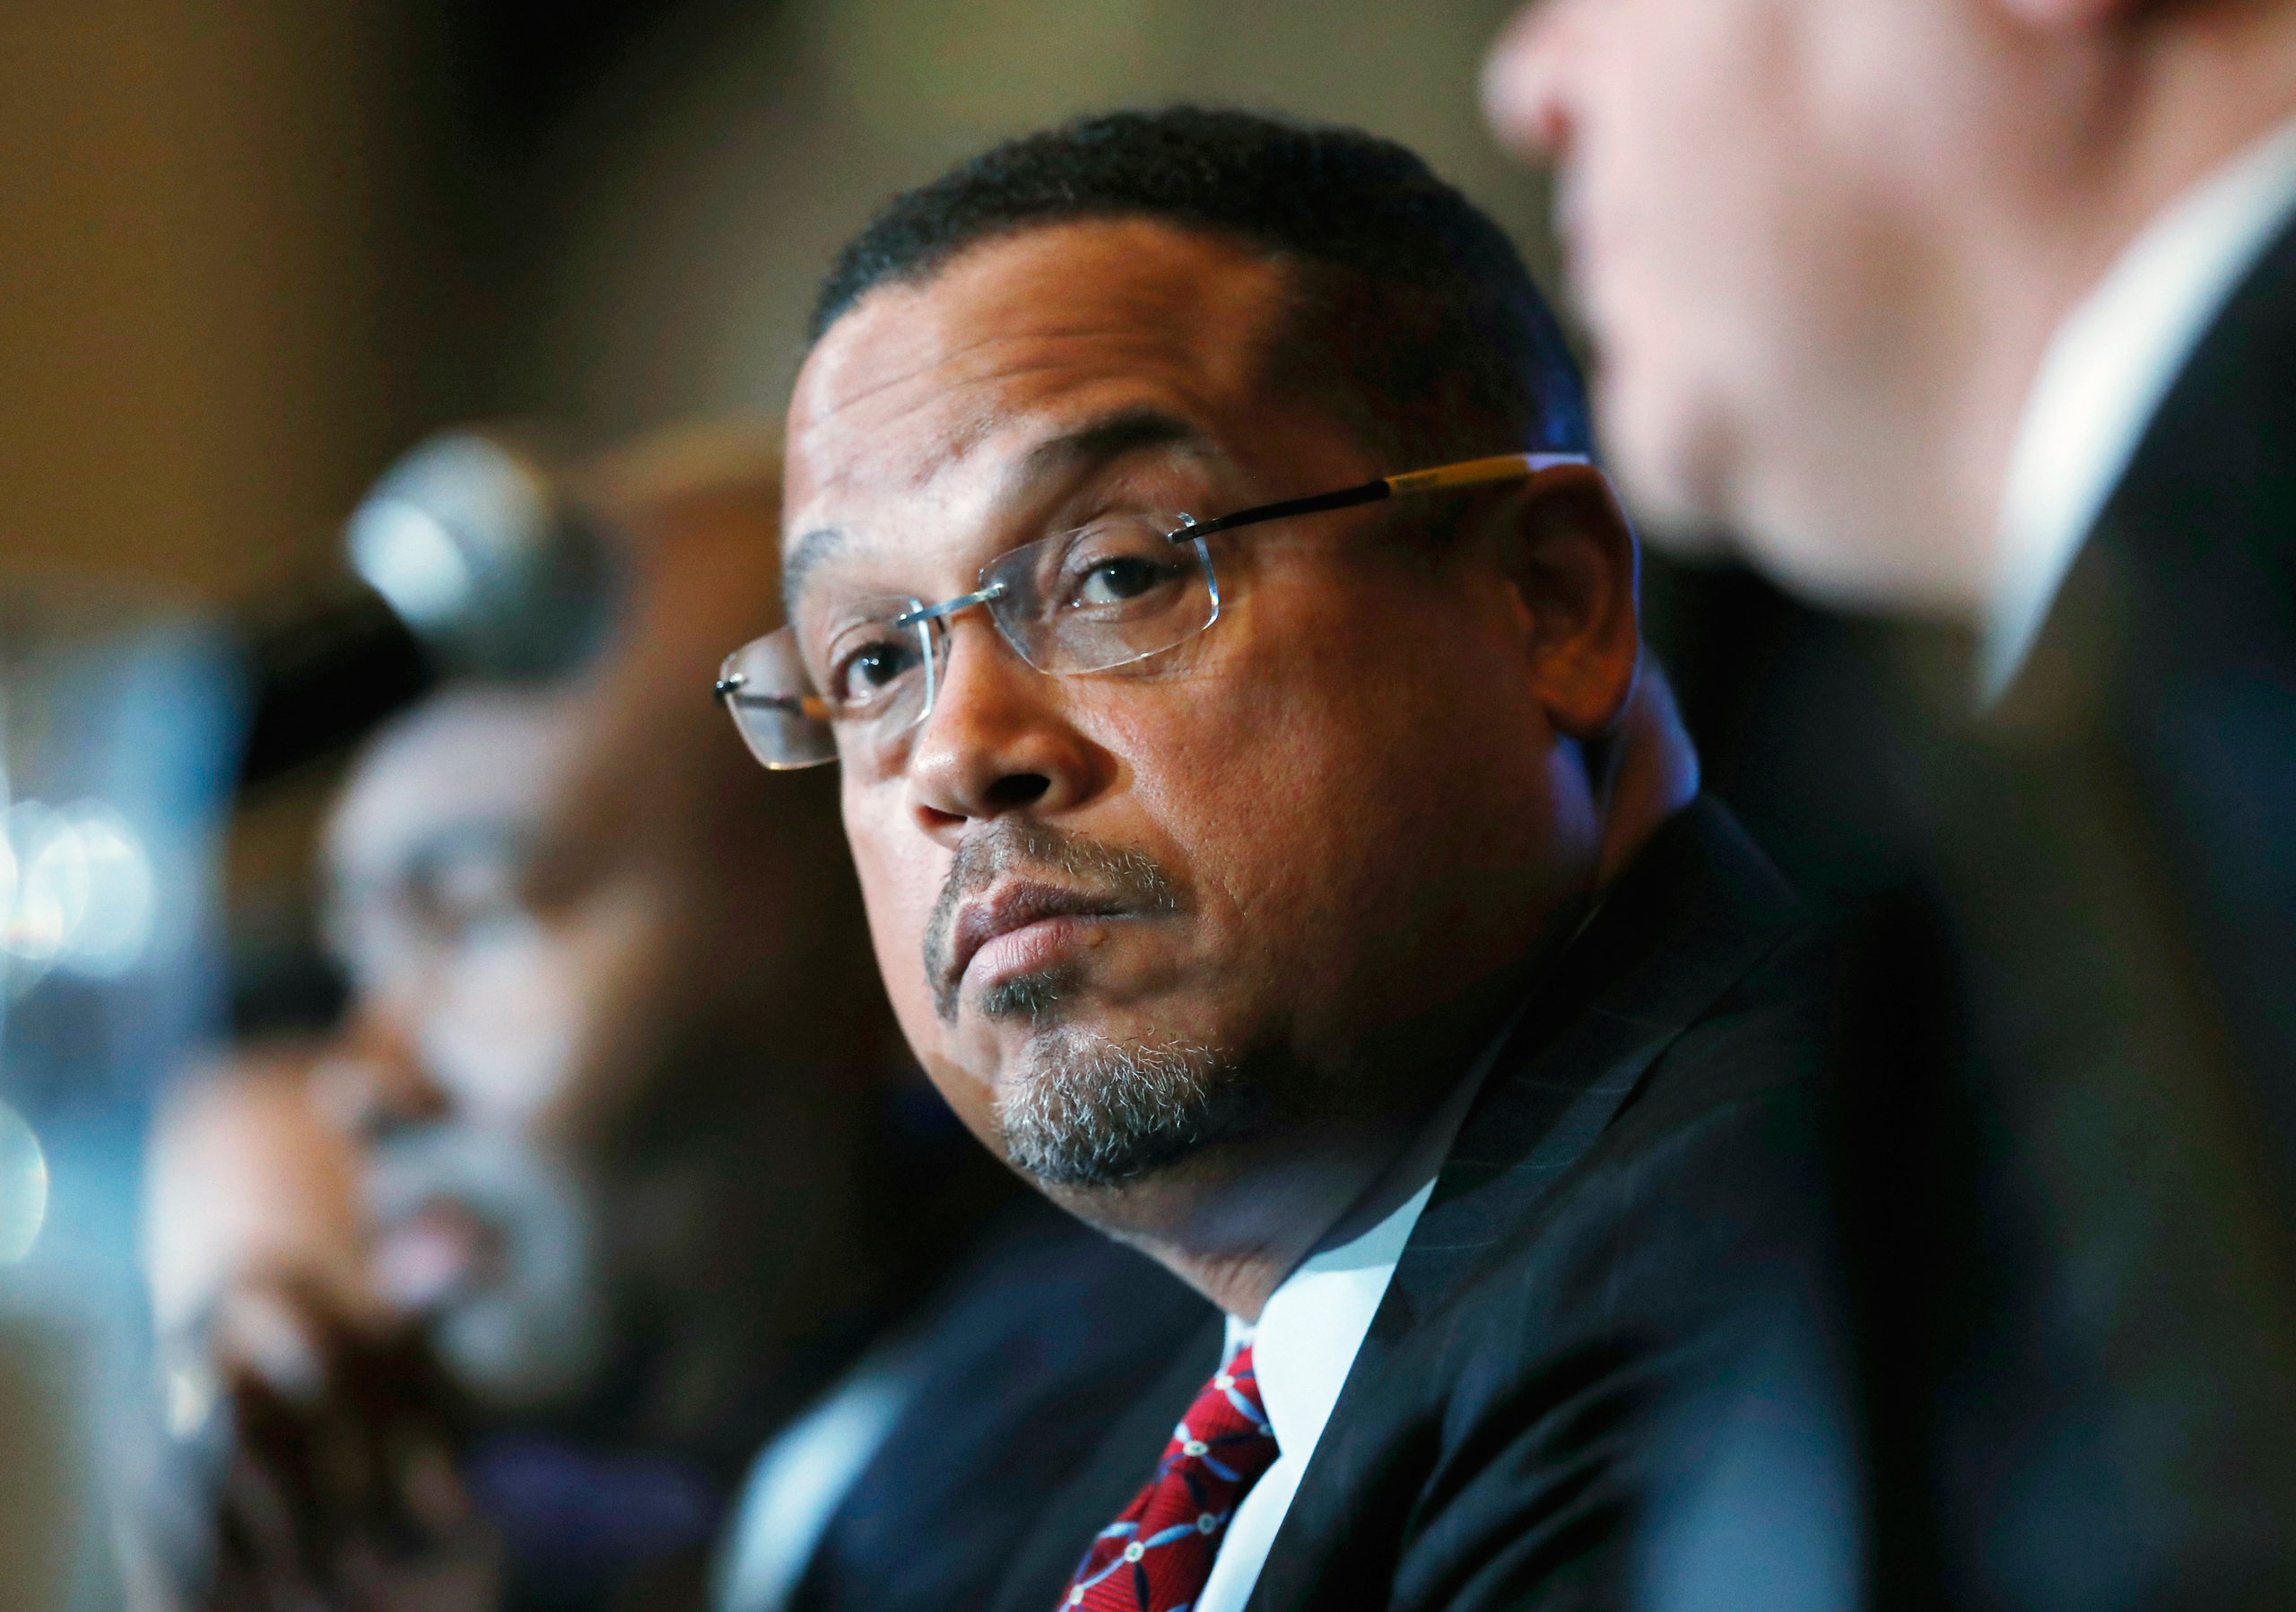 Rep. Keith Ellison listens during a forum on the future of the Democratic Party in Denver on Dec. 2, 2016.